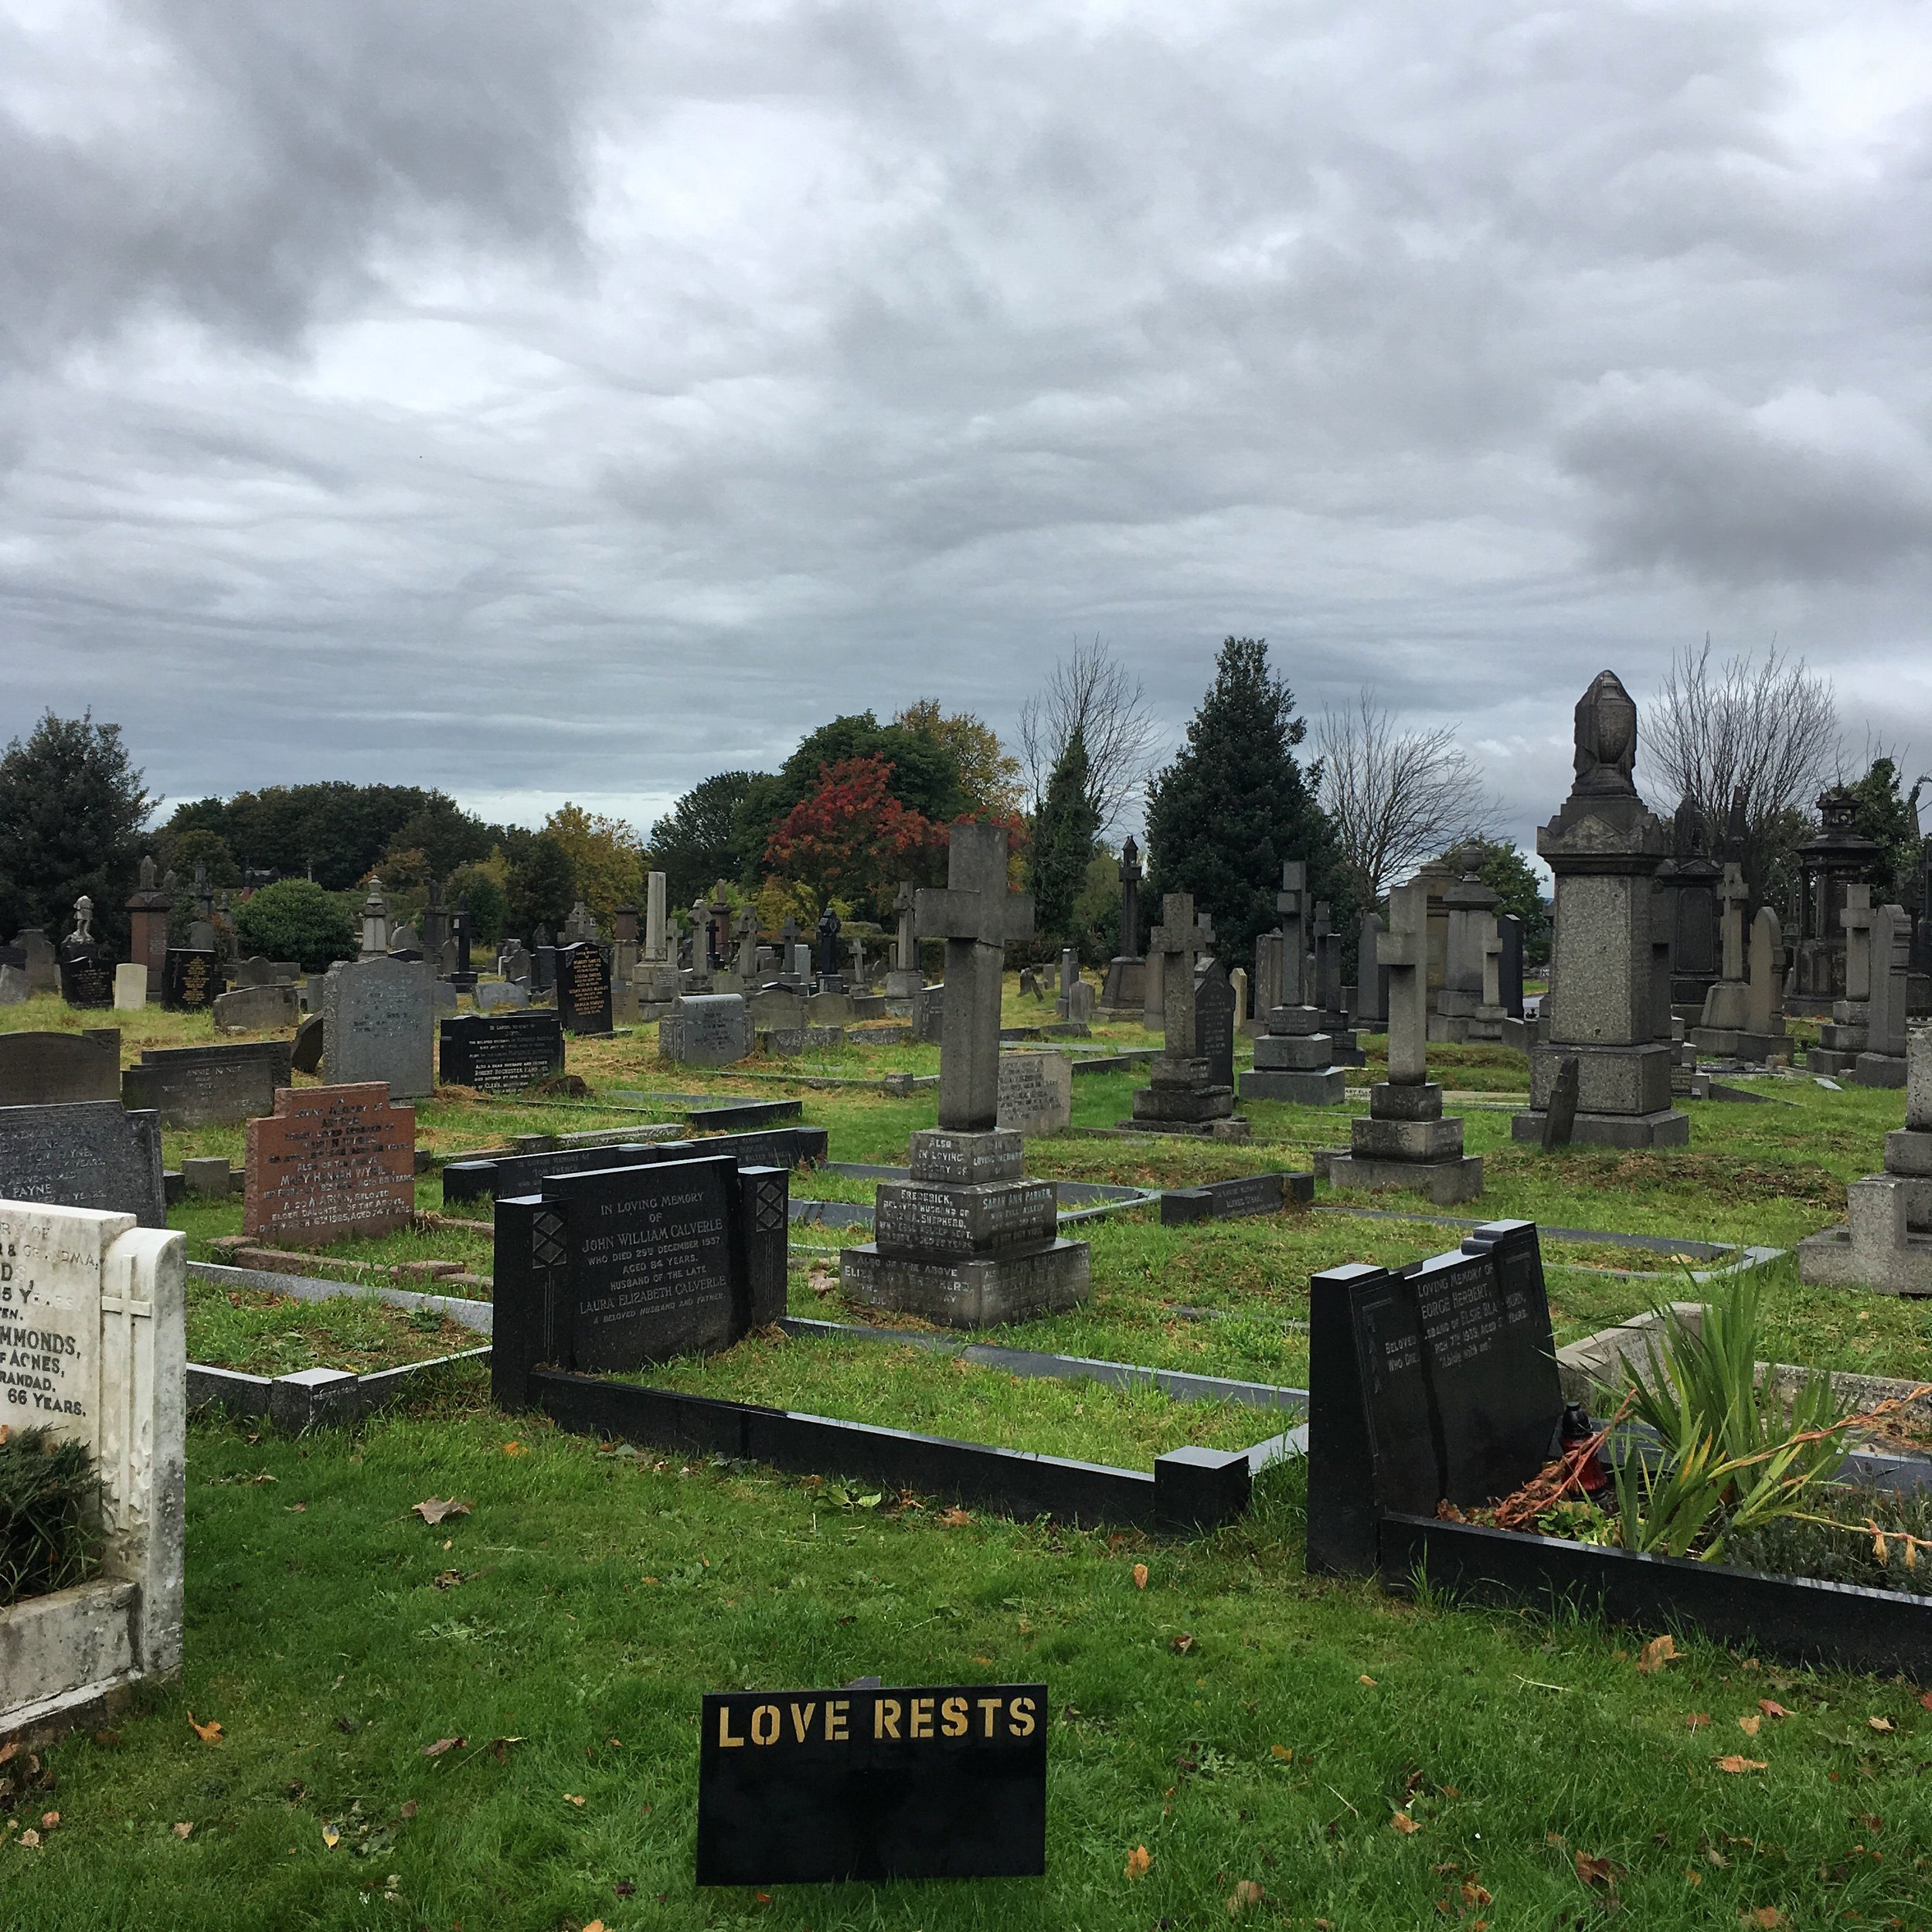 Love Rests  i've created new onsite text works taking inspiration from the text on head stones and religion